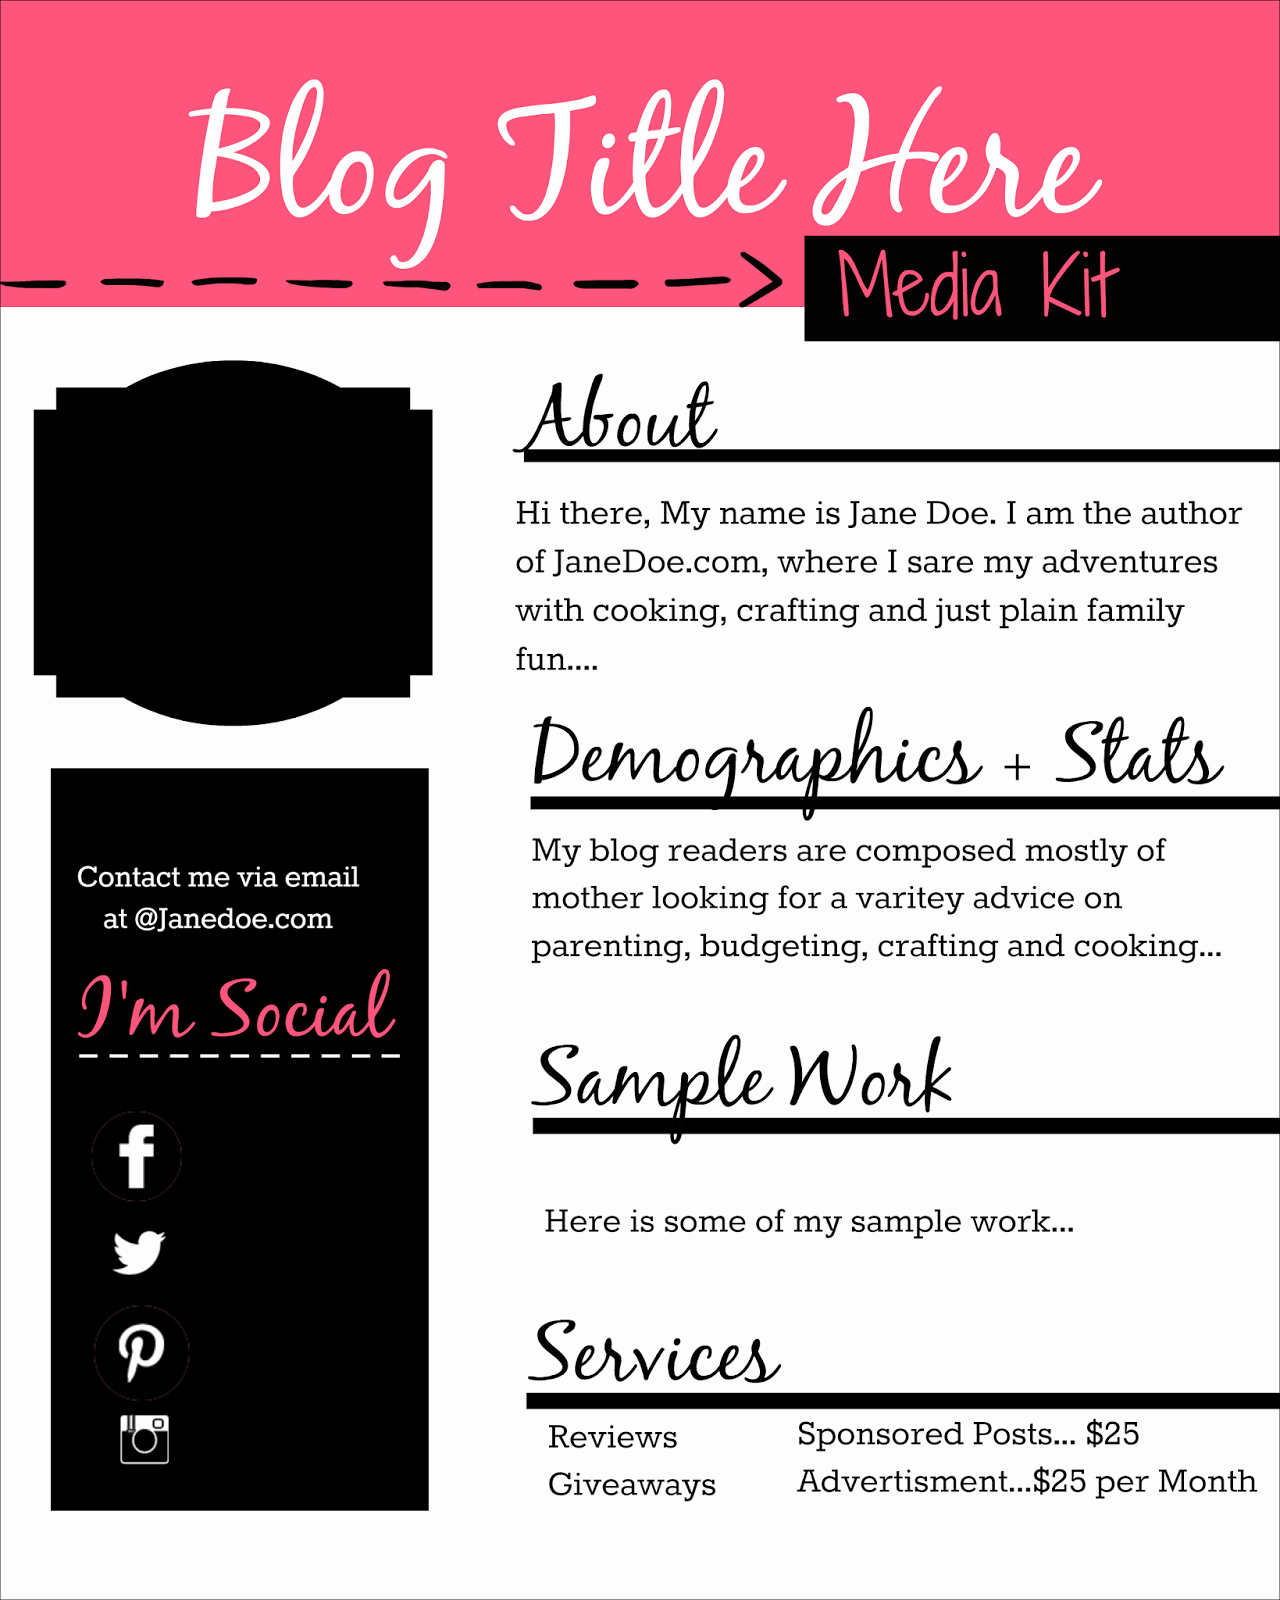 Free Press Kit Template Best Of How to Design A Free Media Kit for Your Blog Premade